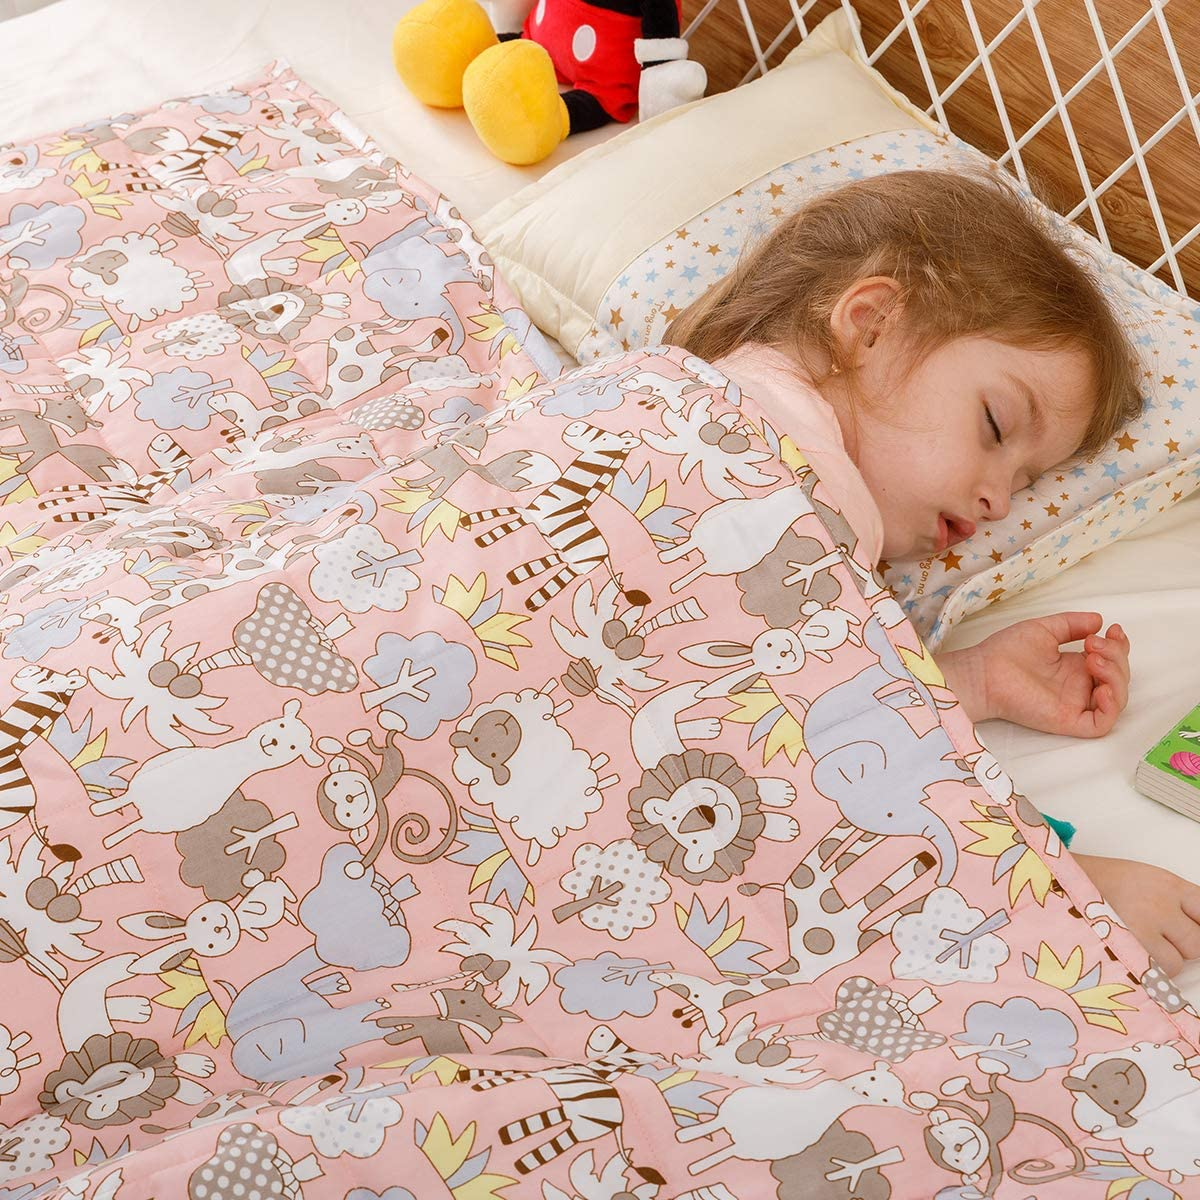 Buzio weighted blanket for kids